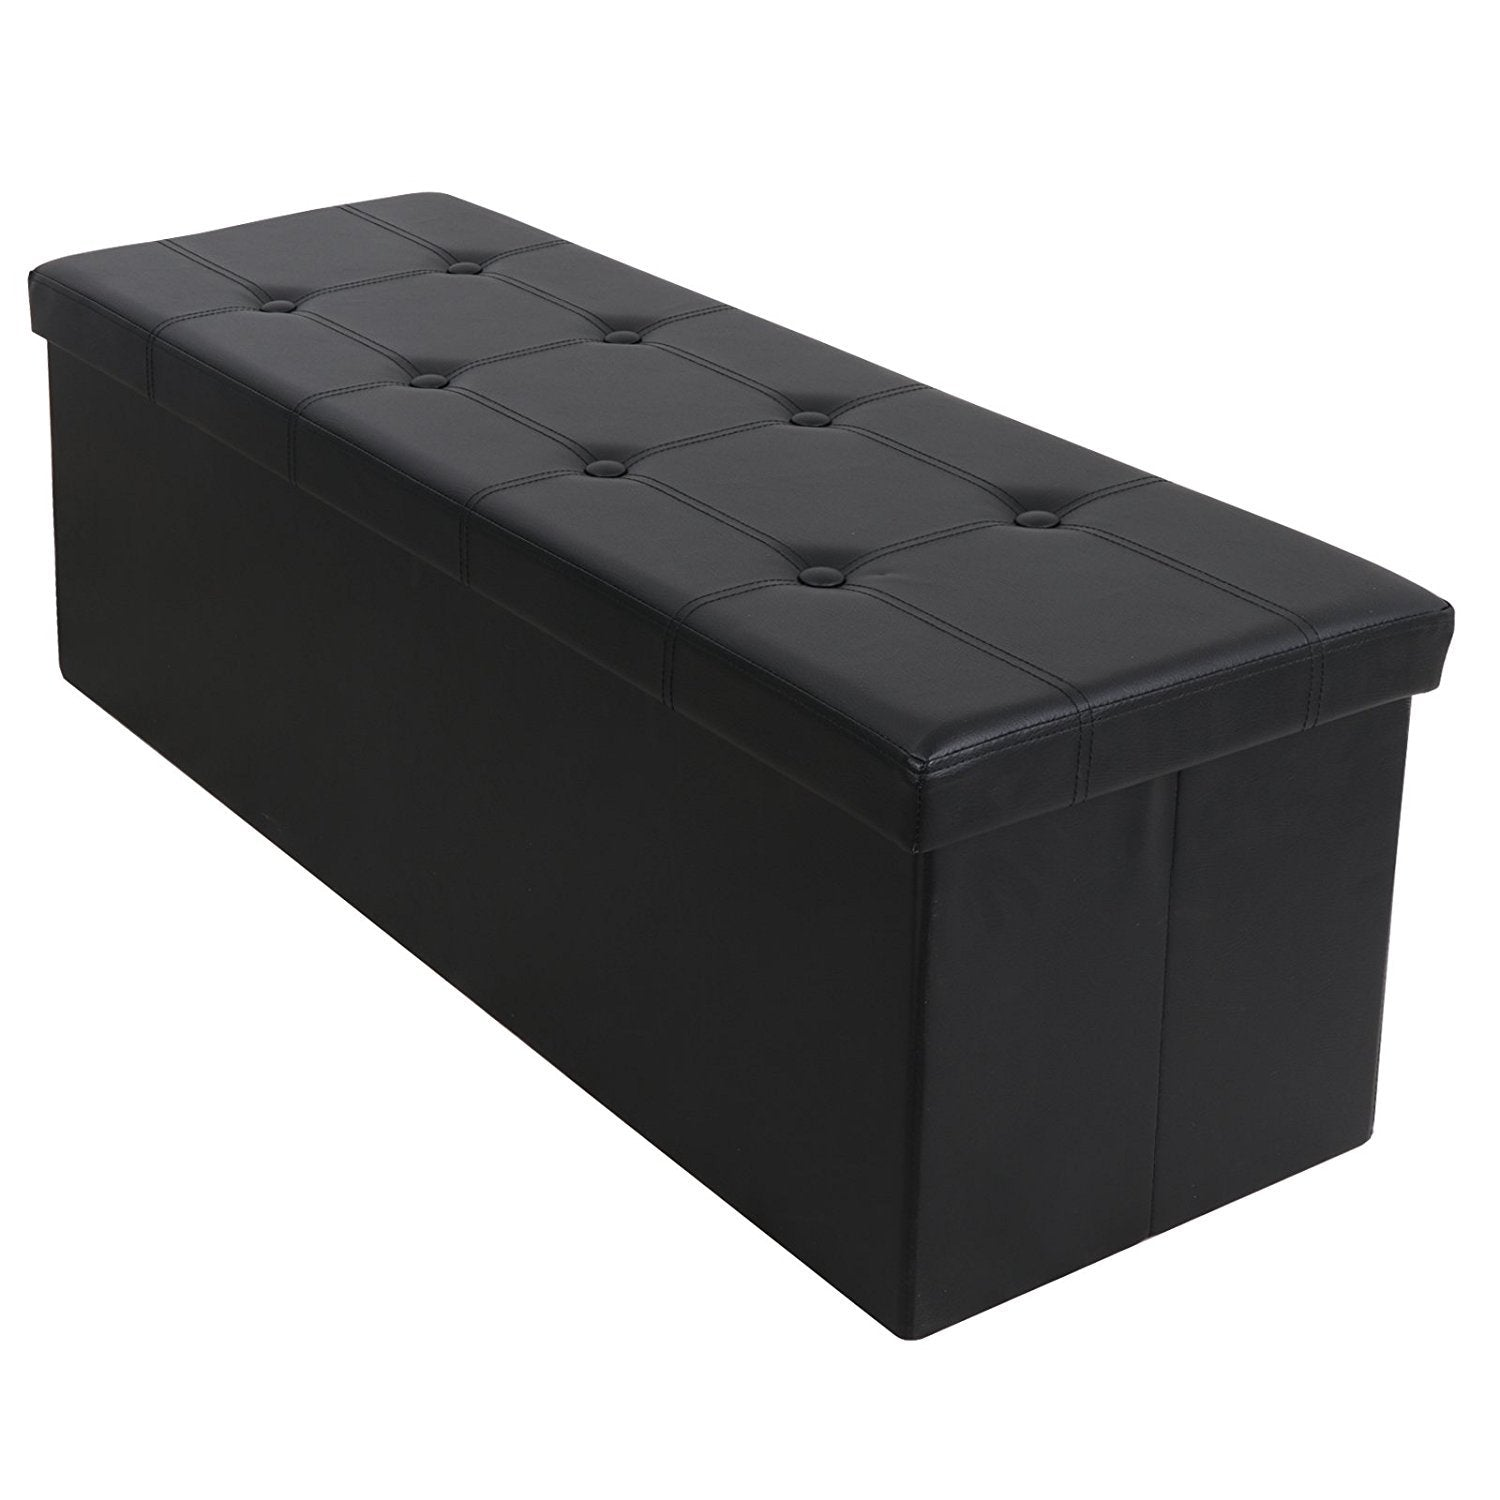 Phenomenal Zeny 43In Long Faux Leather Large Folding Ottoman Storage Bench Foot Rest Stool Seat Black Ncnpc Chair Design For Home Ncnpcorg